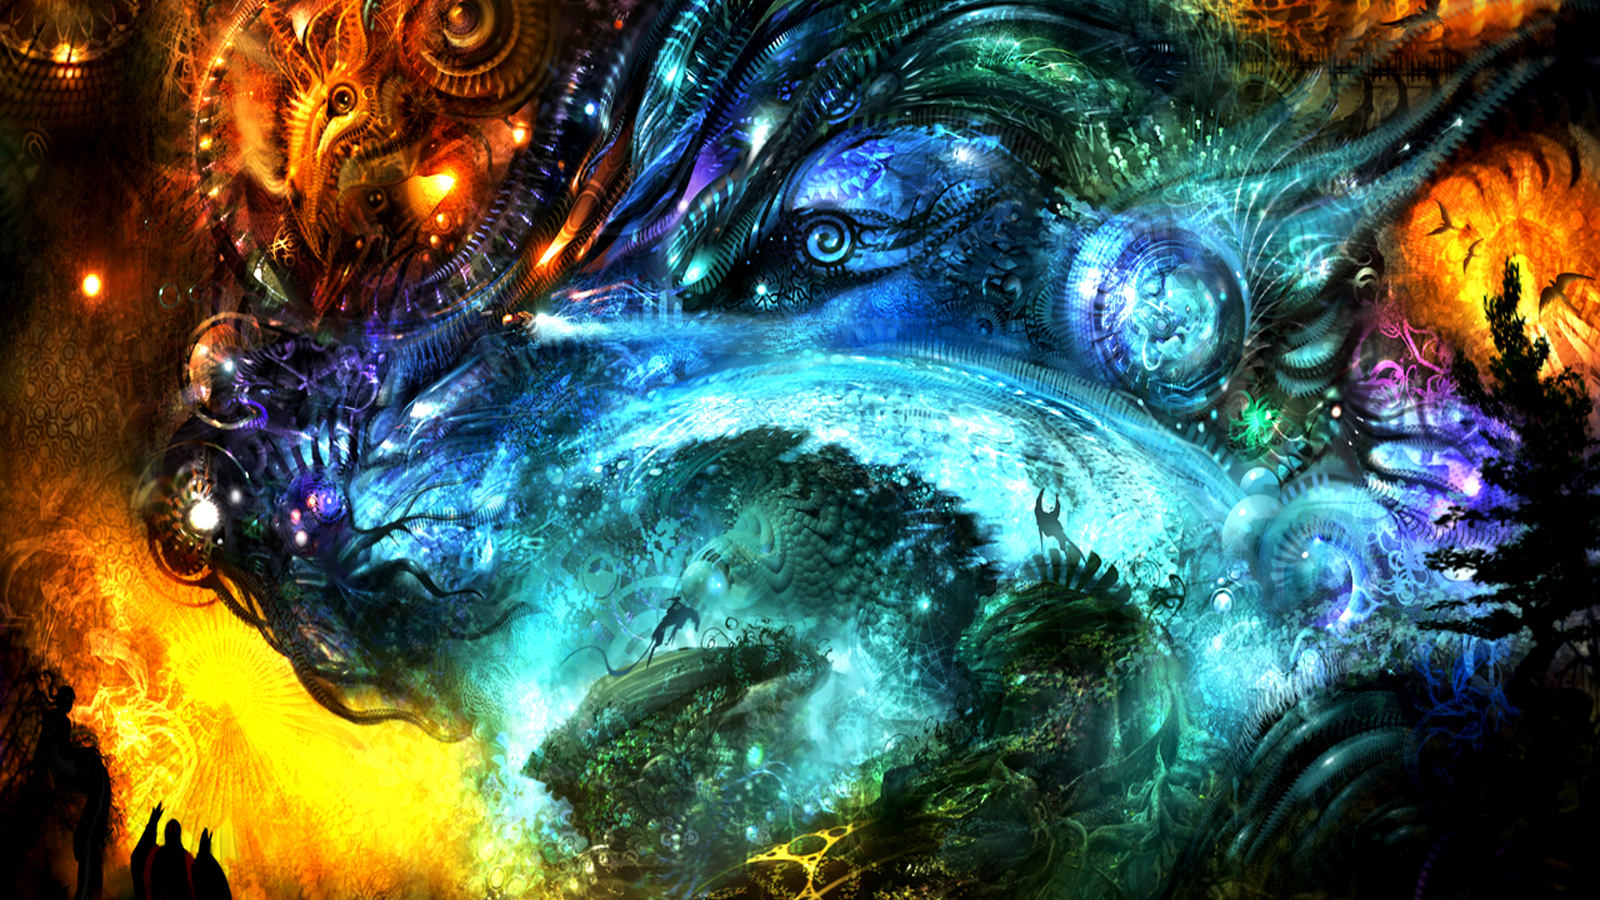 fantasy art science fiction HD Wallpaper